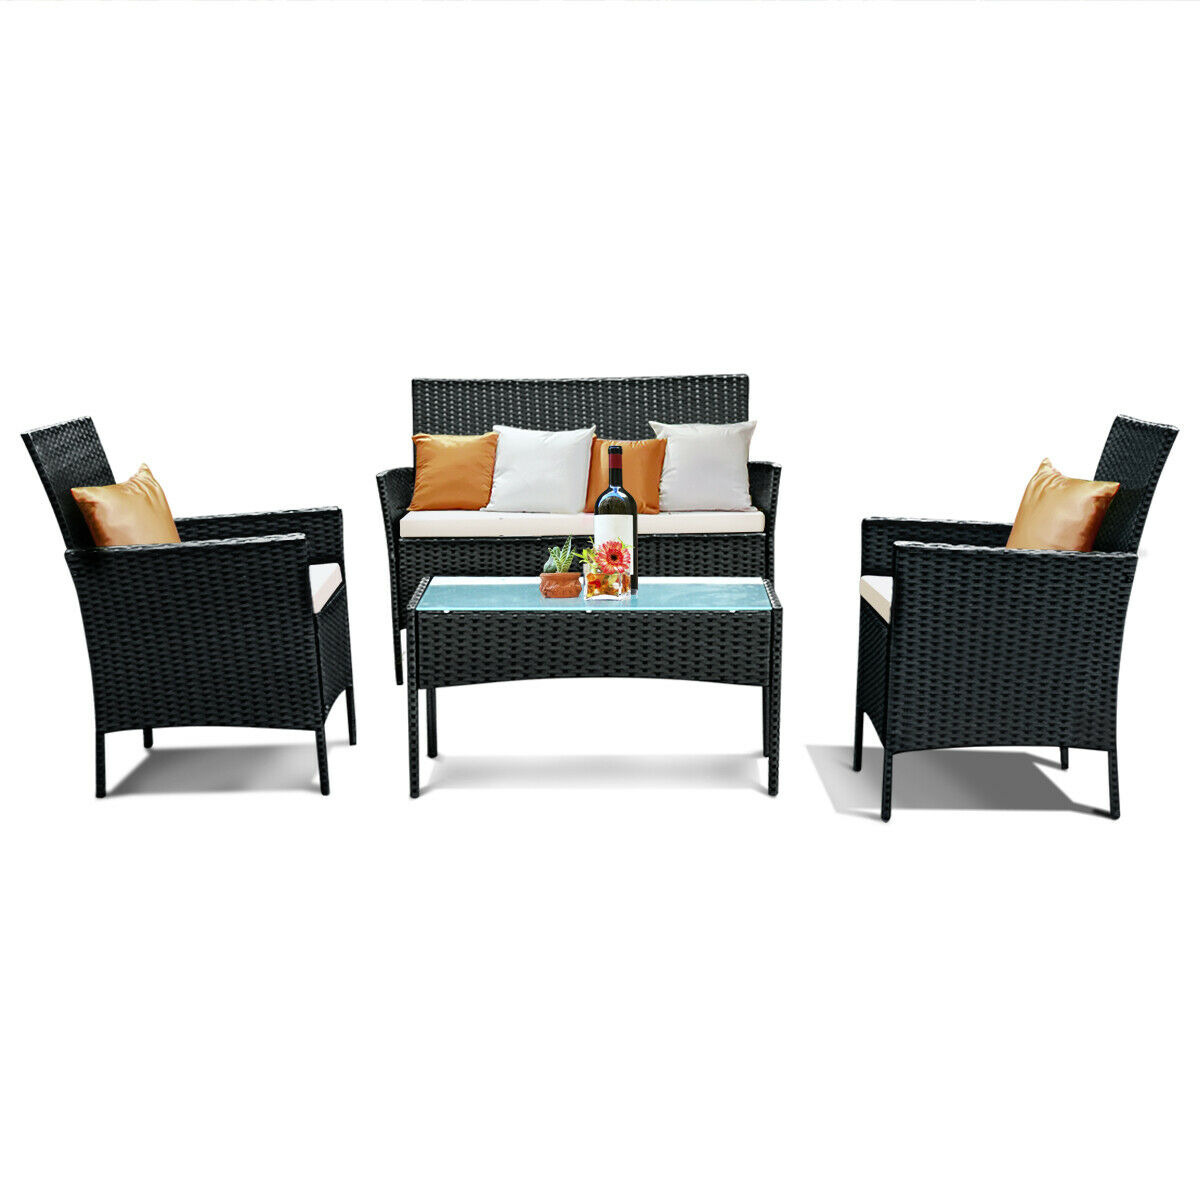 Marvelous Outdoor Cushions And Accessories Walmart Canada Andrewgaddart Wooden Chair Designs For Living Room Andrewgaddartcom